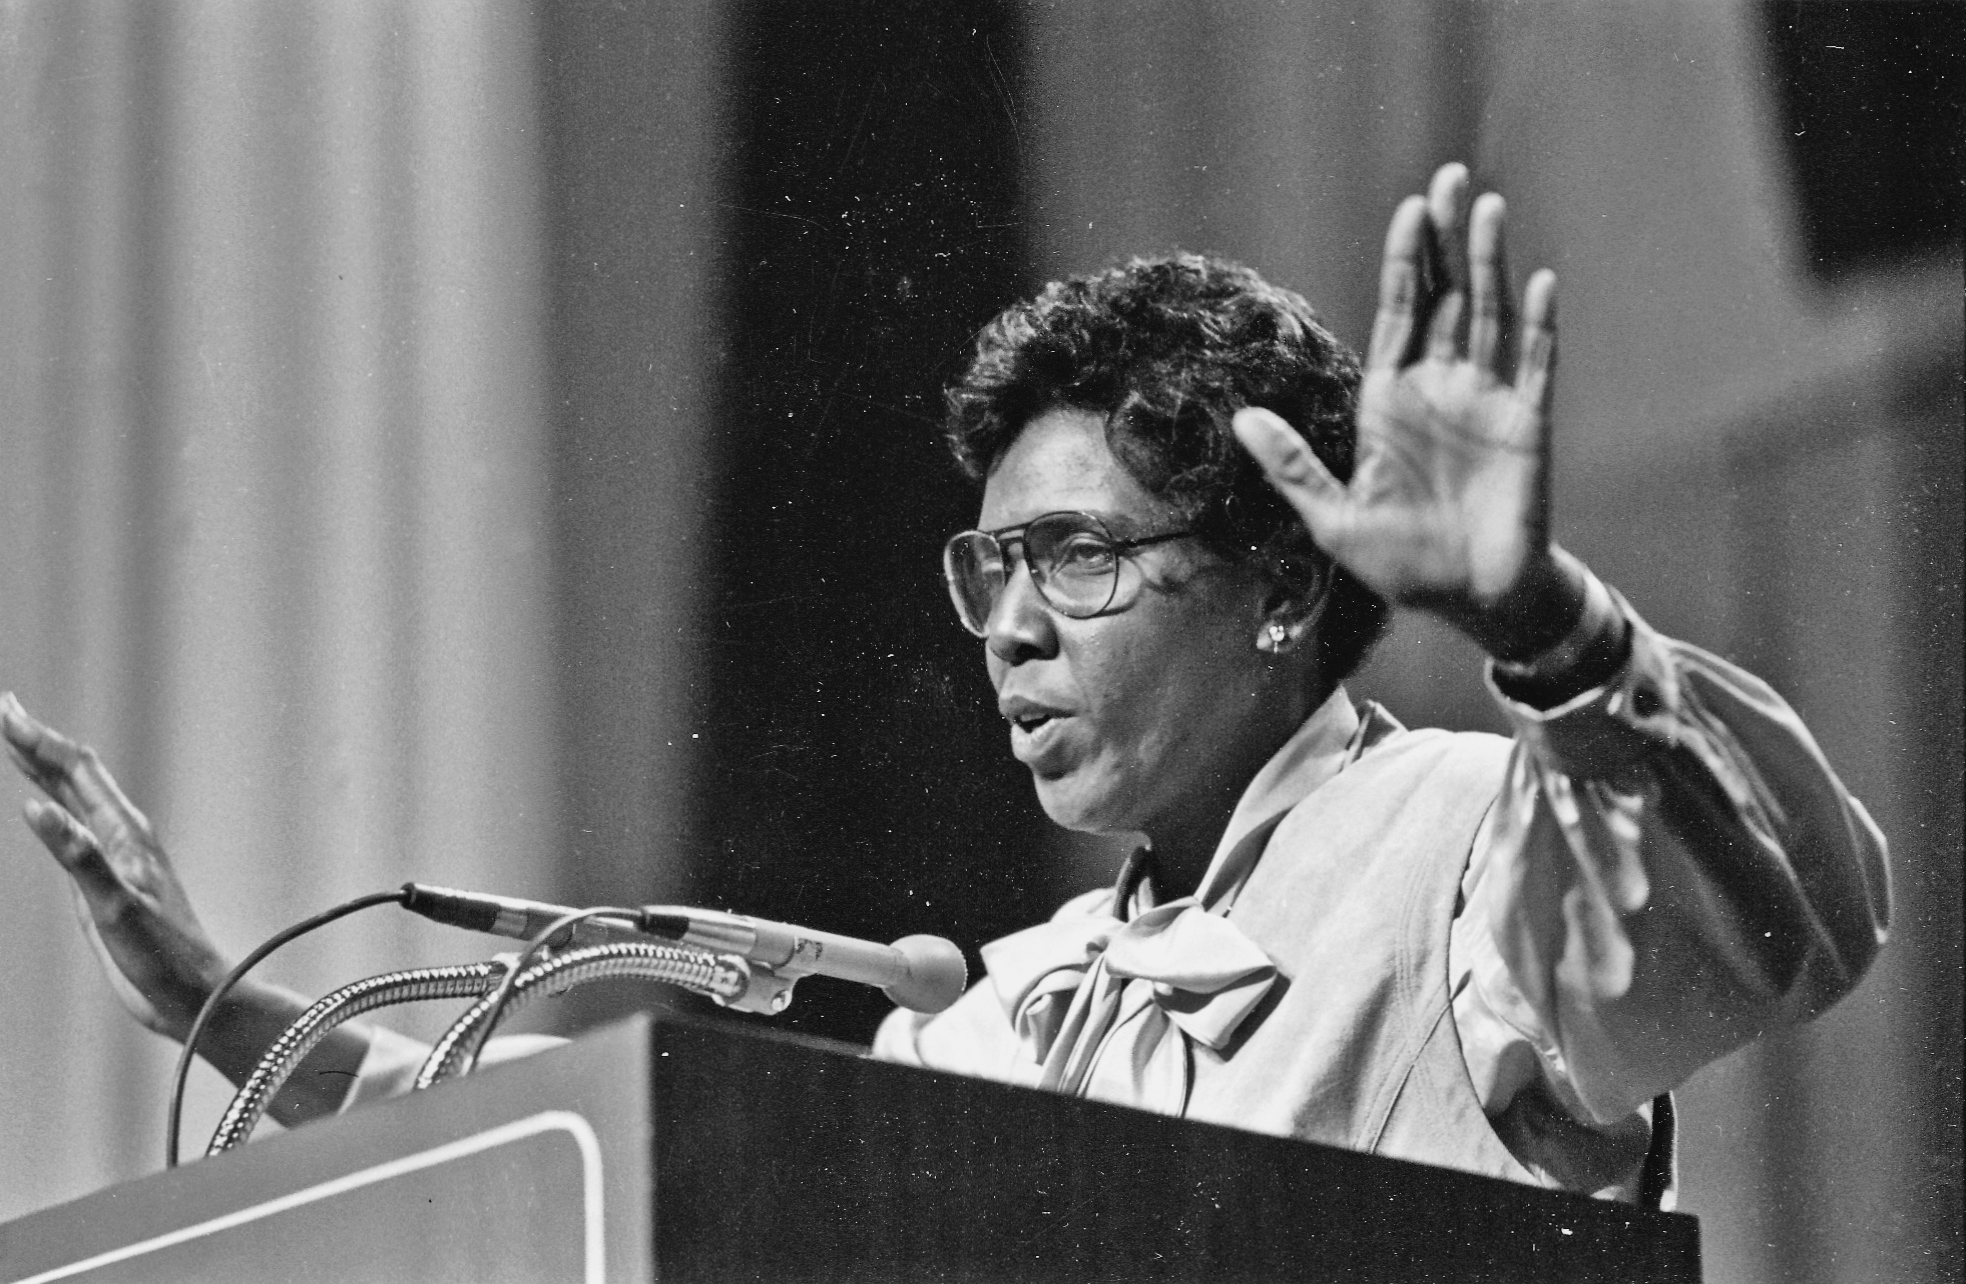 U.S congresswoman Barbara Jordan electrified audiences with her distinct oratory style, a style she admitted was learned during her years on the Texas Southern University debate team under the leadership of Dr. Thomas Freeman.